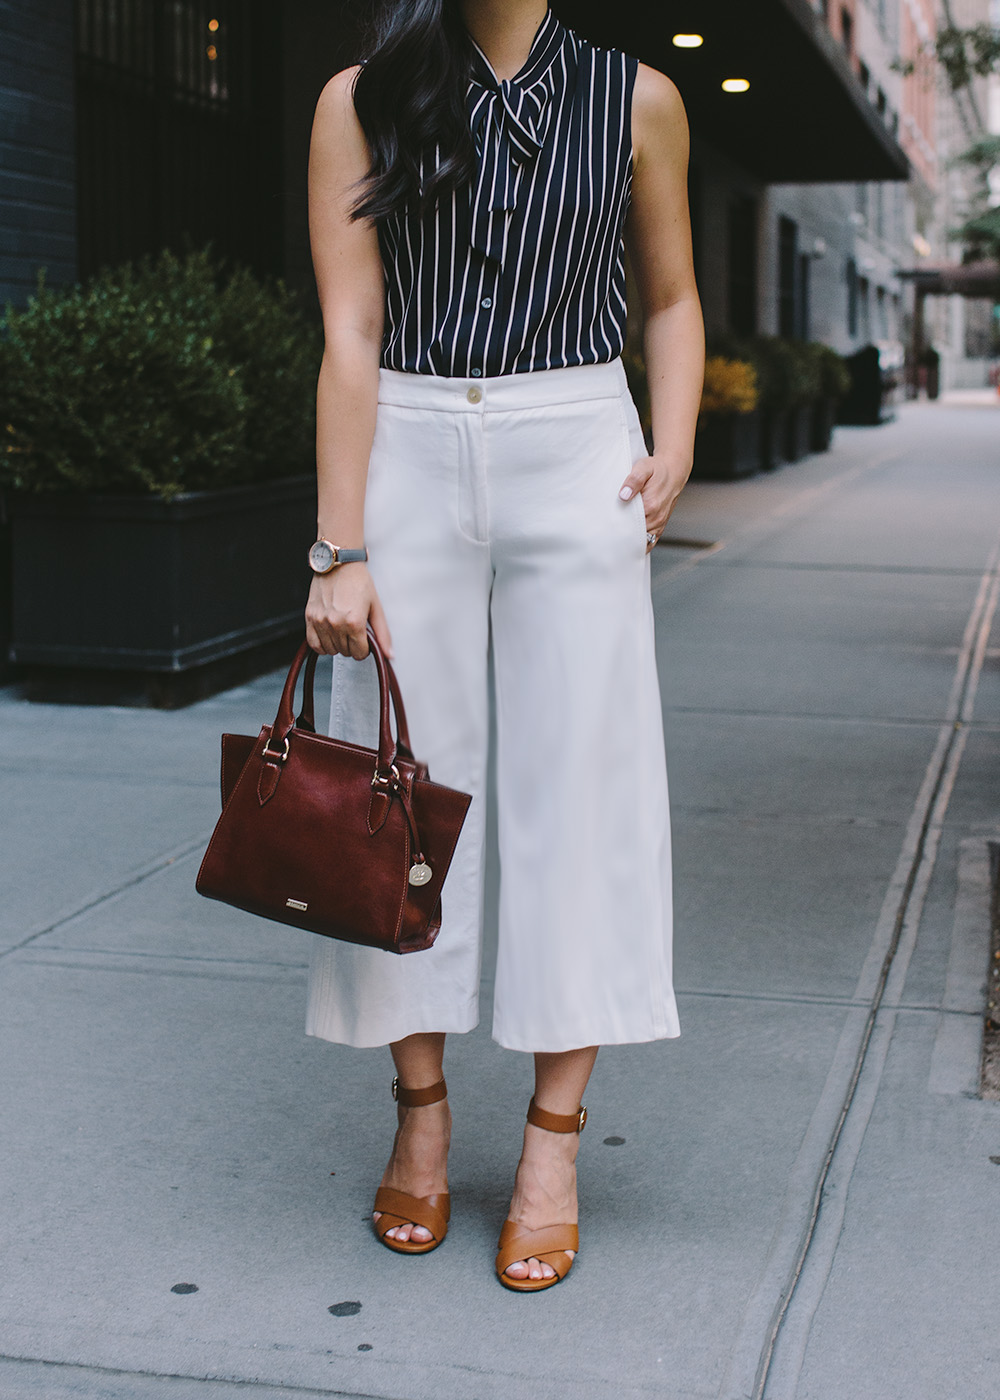 Women's Work Fashion Inspiration / White Wide Legged Pants by Ann Taylor